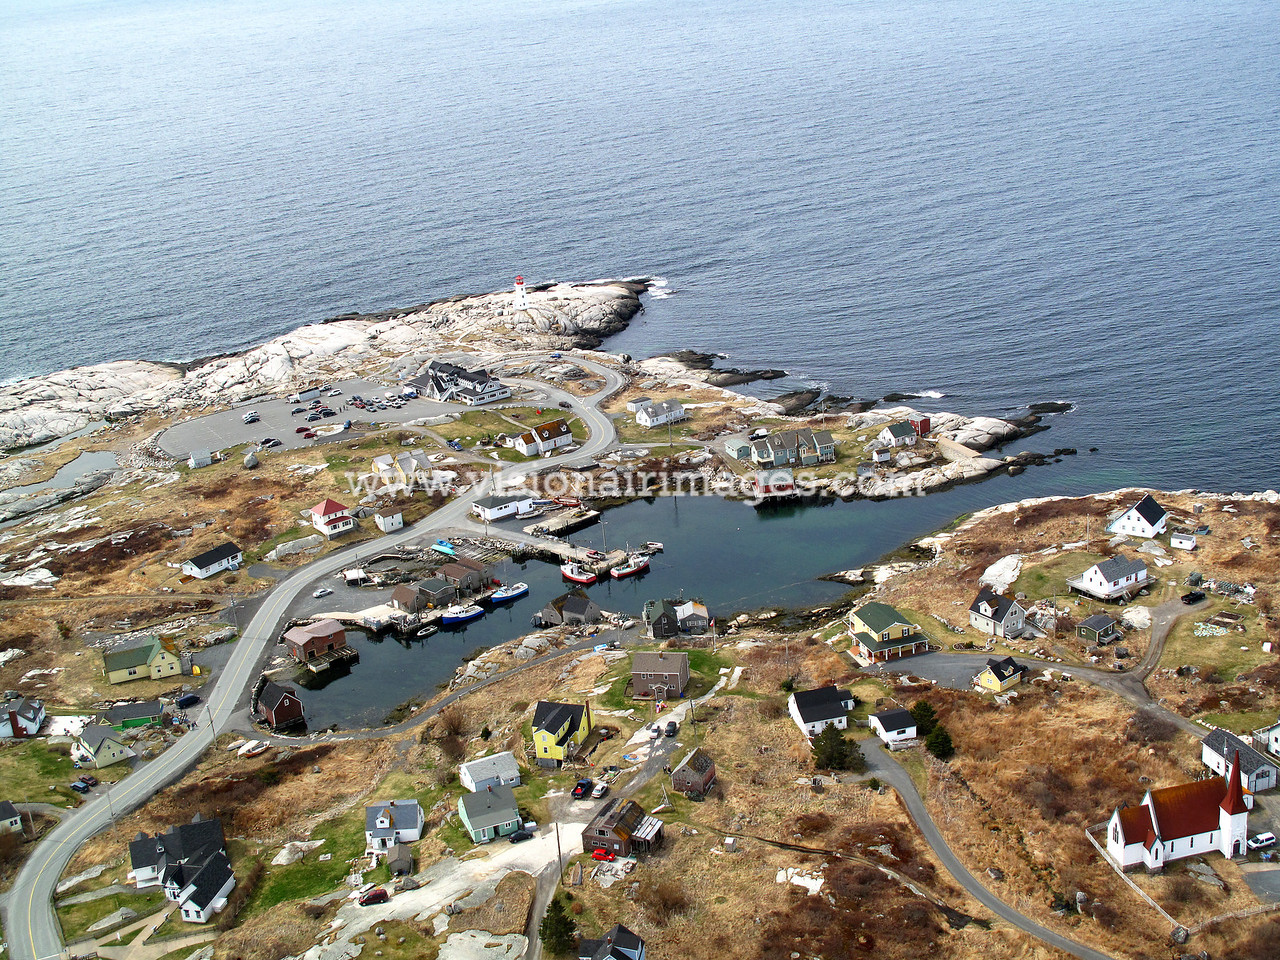 Peggy's Cove, Lighthouse, Aerial, Fishing Village,Prospect Road, 333, Halifax, Nova Scotia, Canada